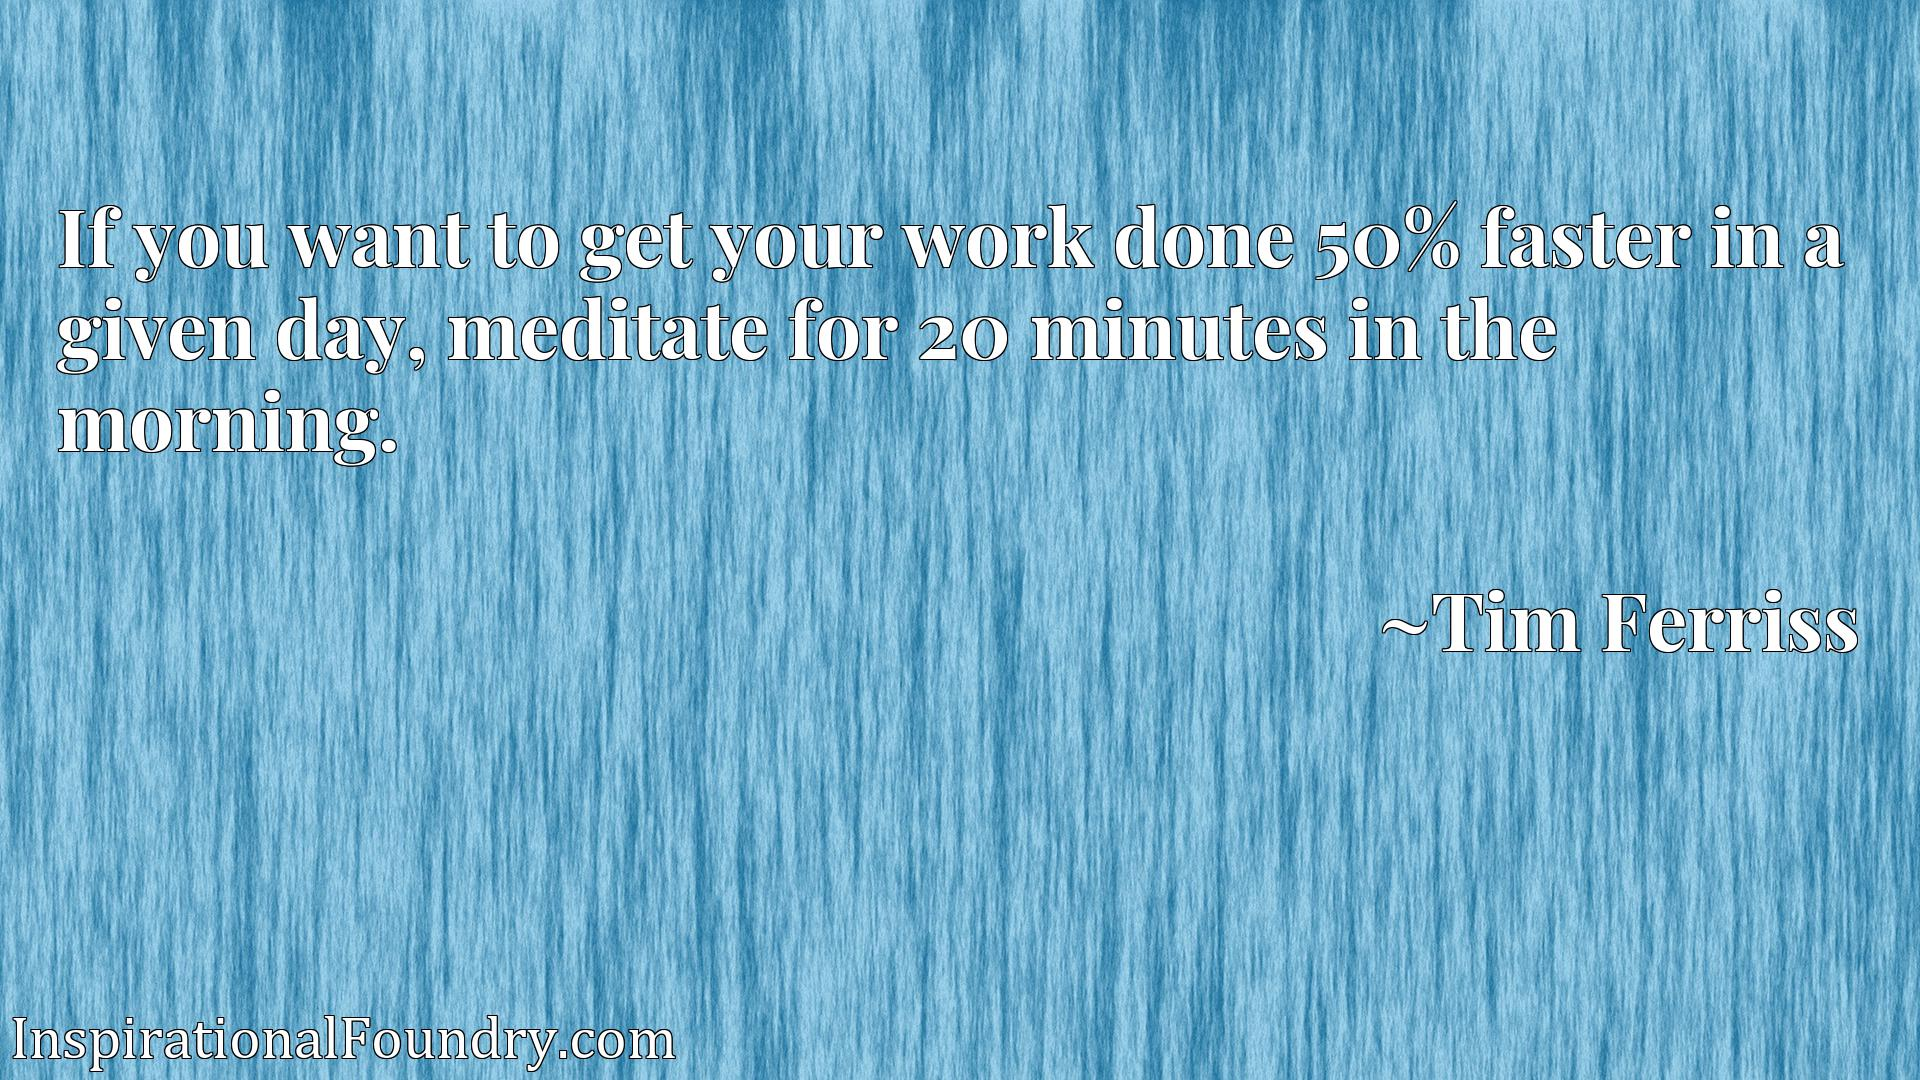 Quote Picture :If you want to get your work done 50% faster in a given day, meditate for 20 minutes in the morning.